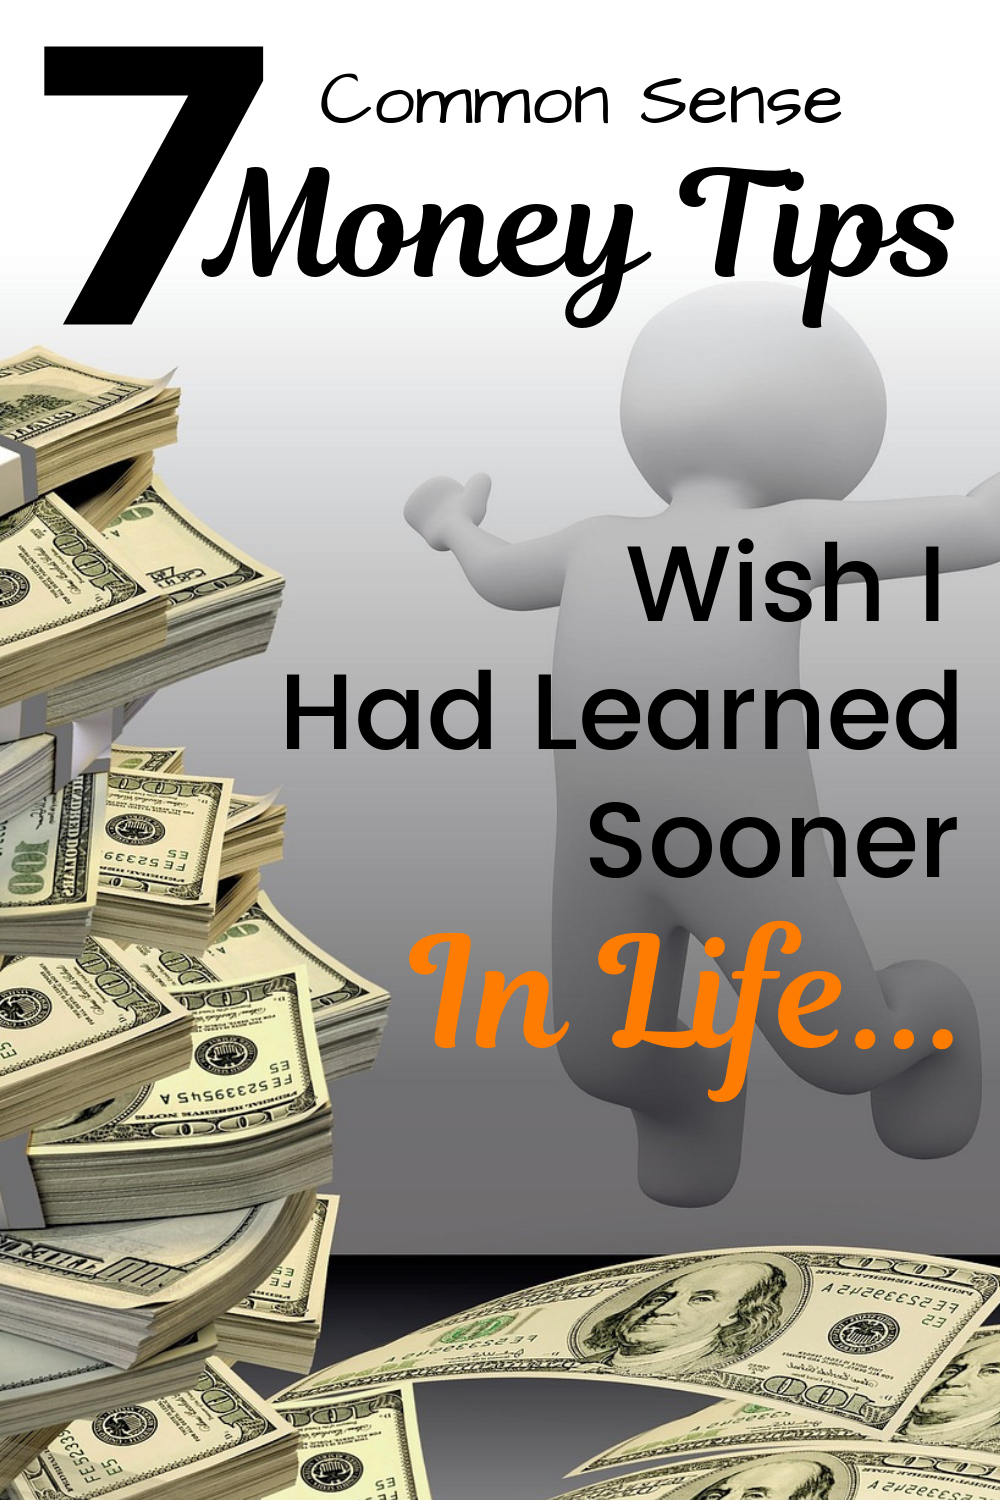 7 Money Tips By Dave Ramsey Wish I Learned Sooner Money